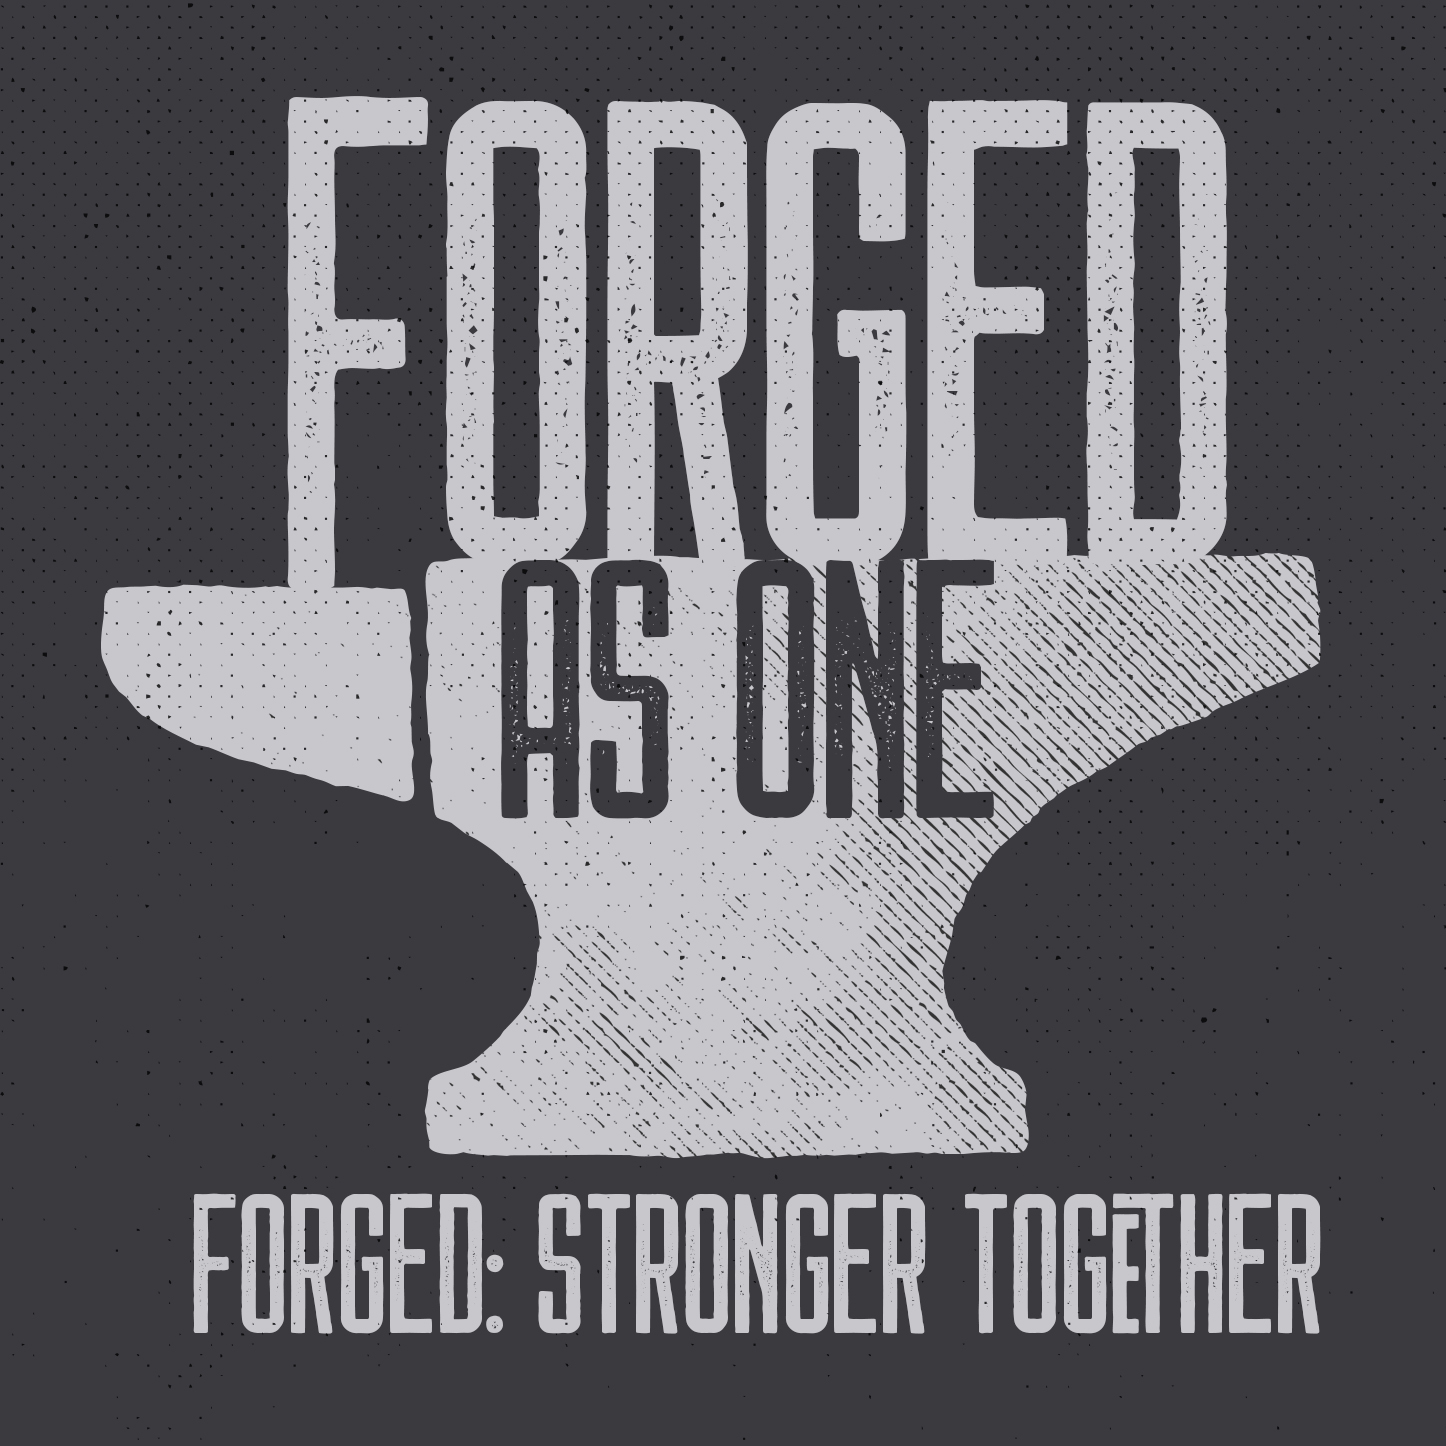 Forged Web Art 4 Stronger